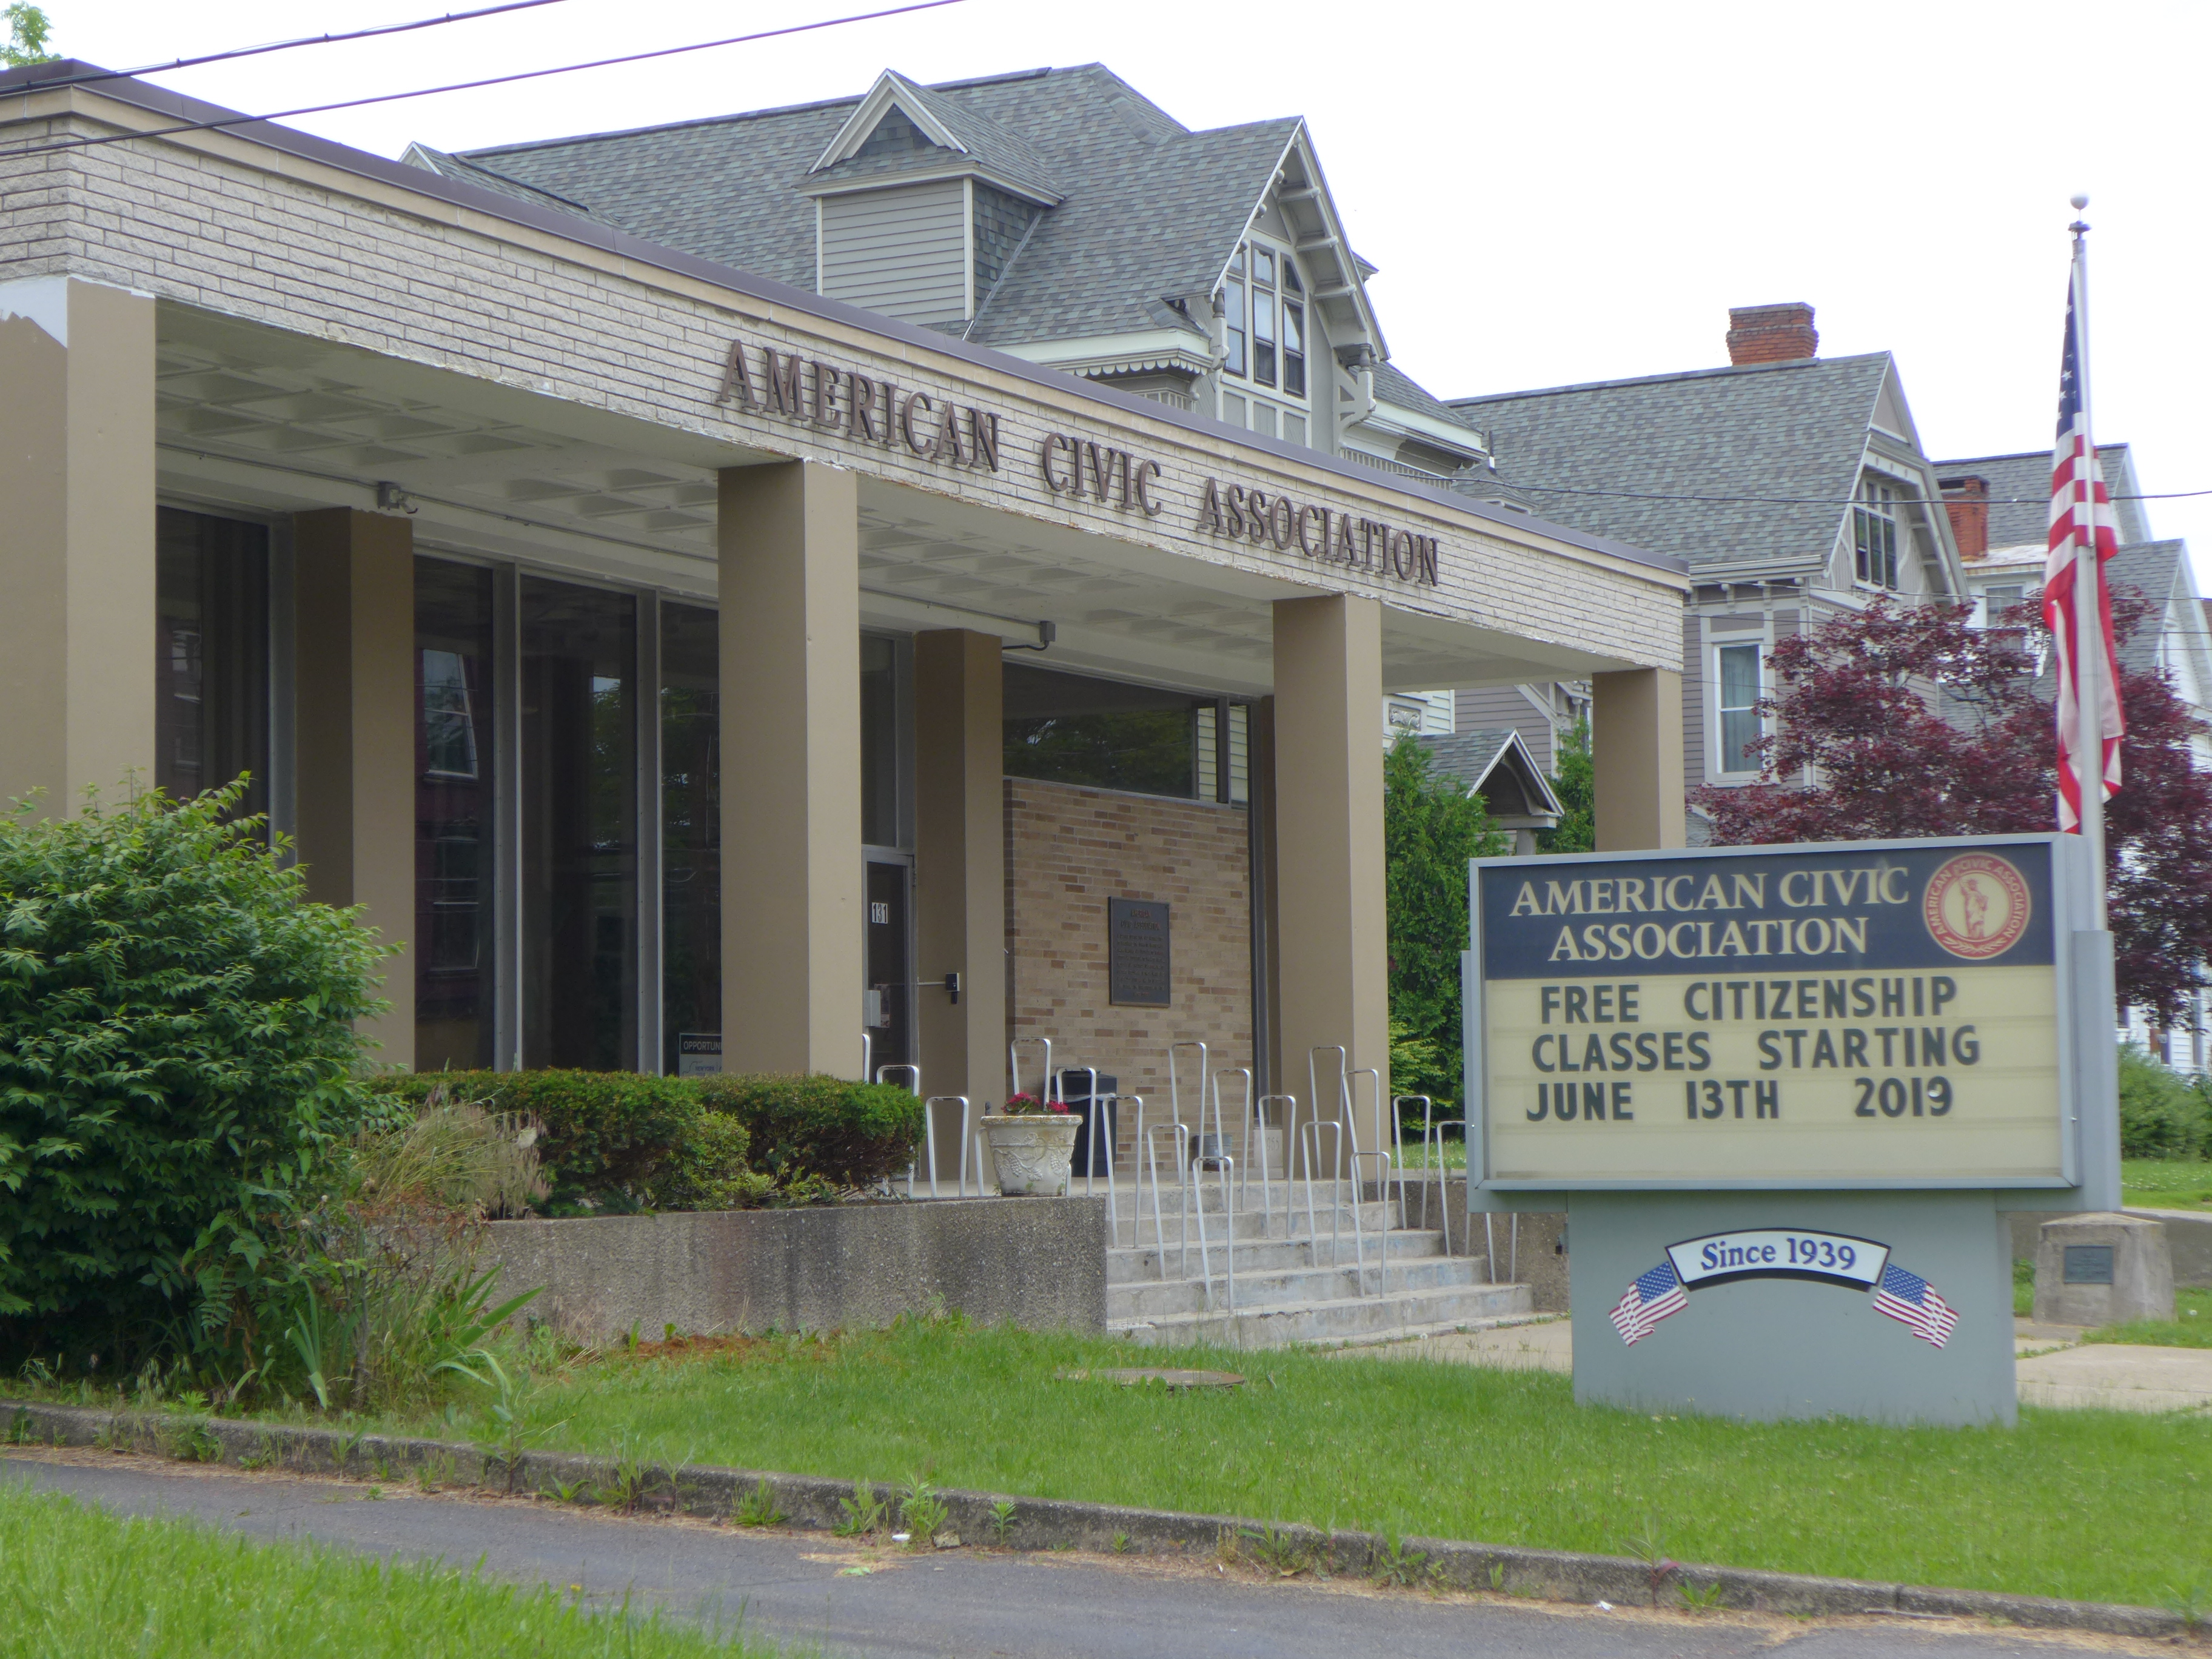 American Civic Association, Binghamton, NY, 2019